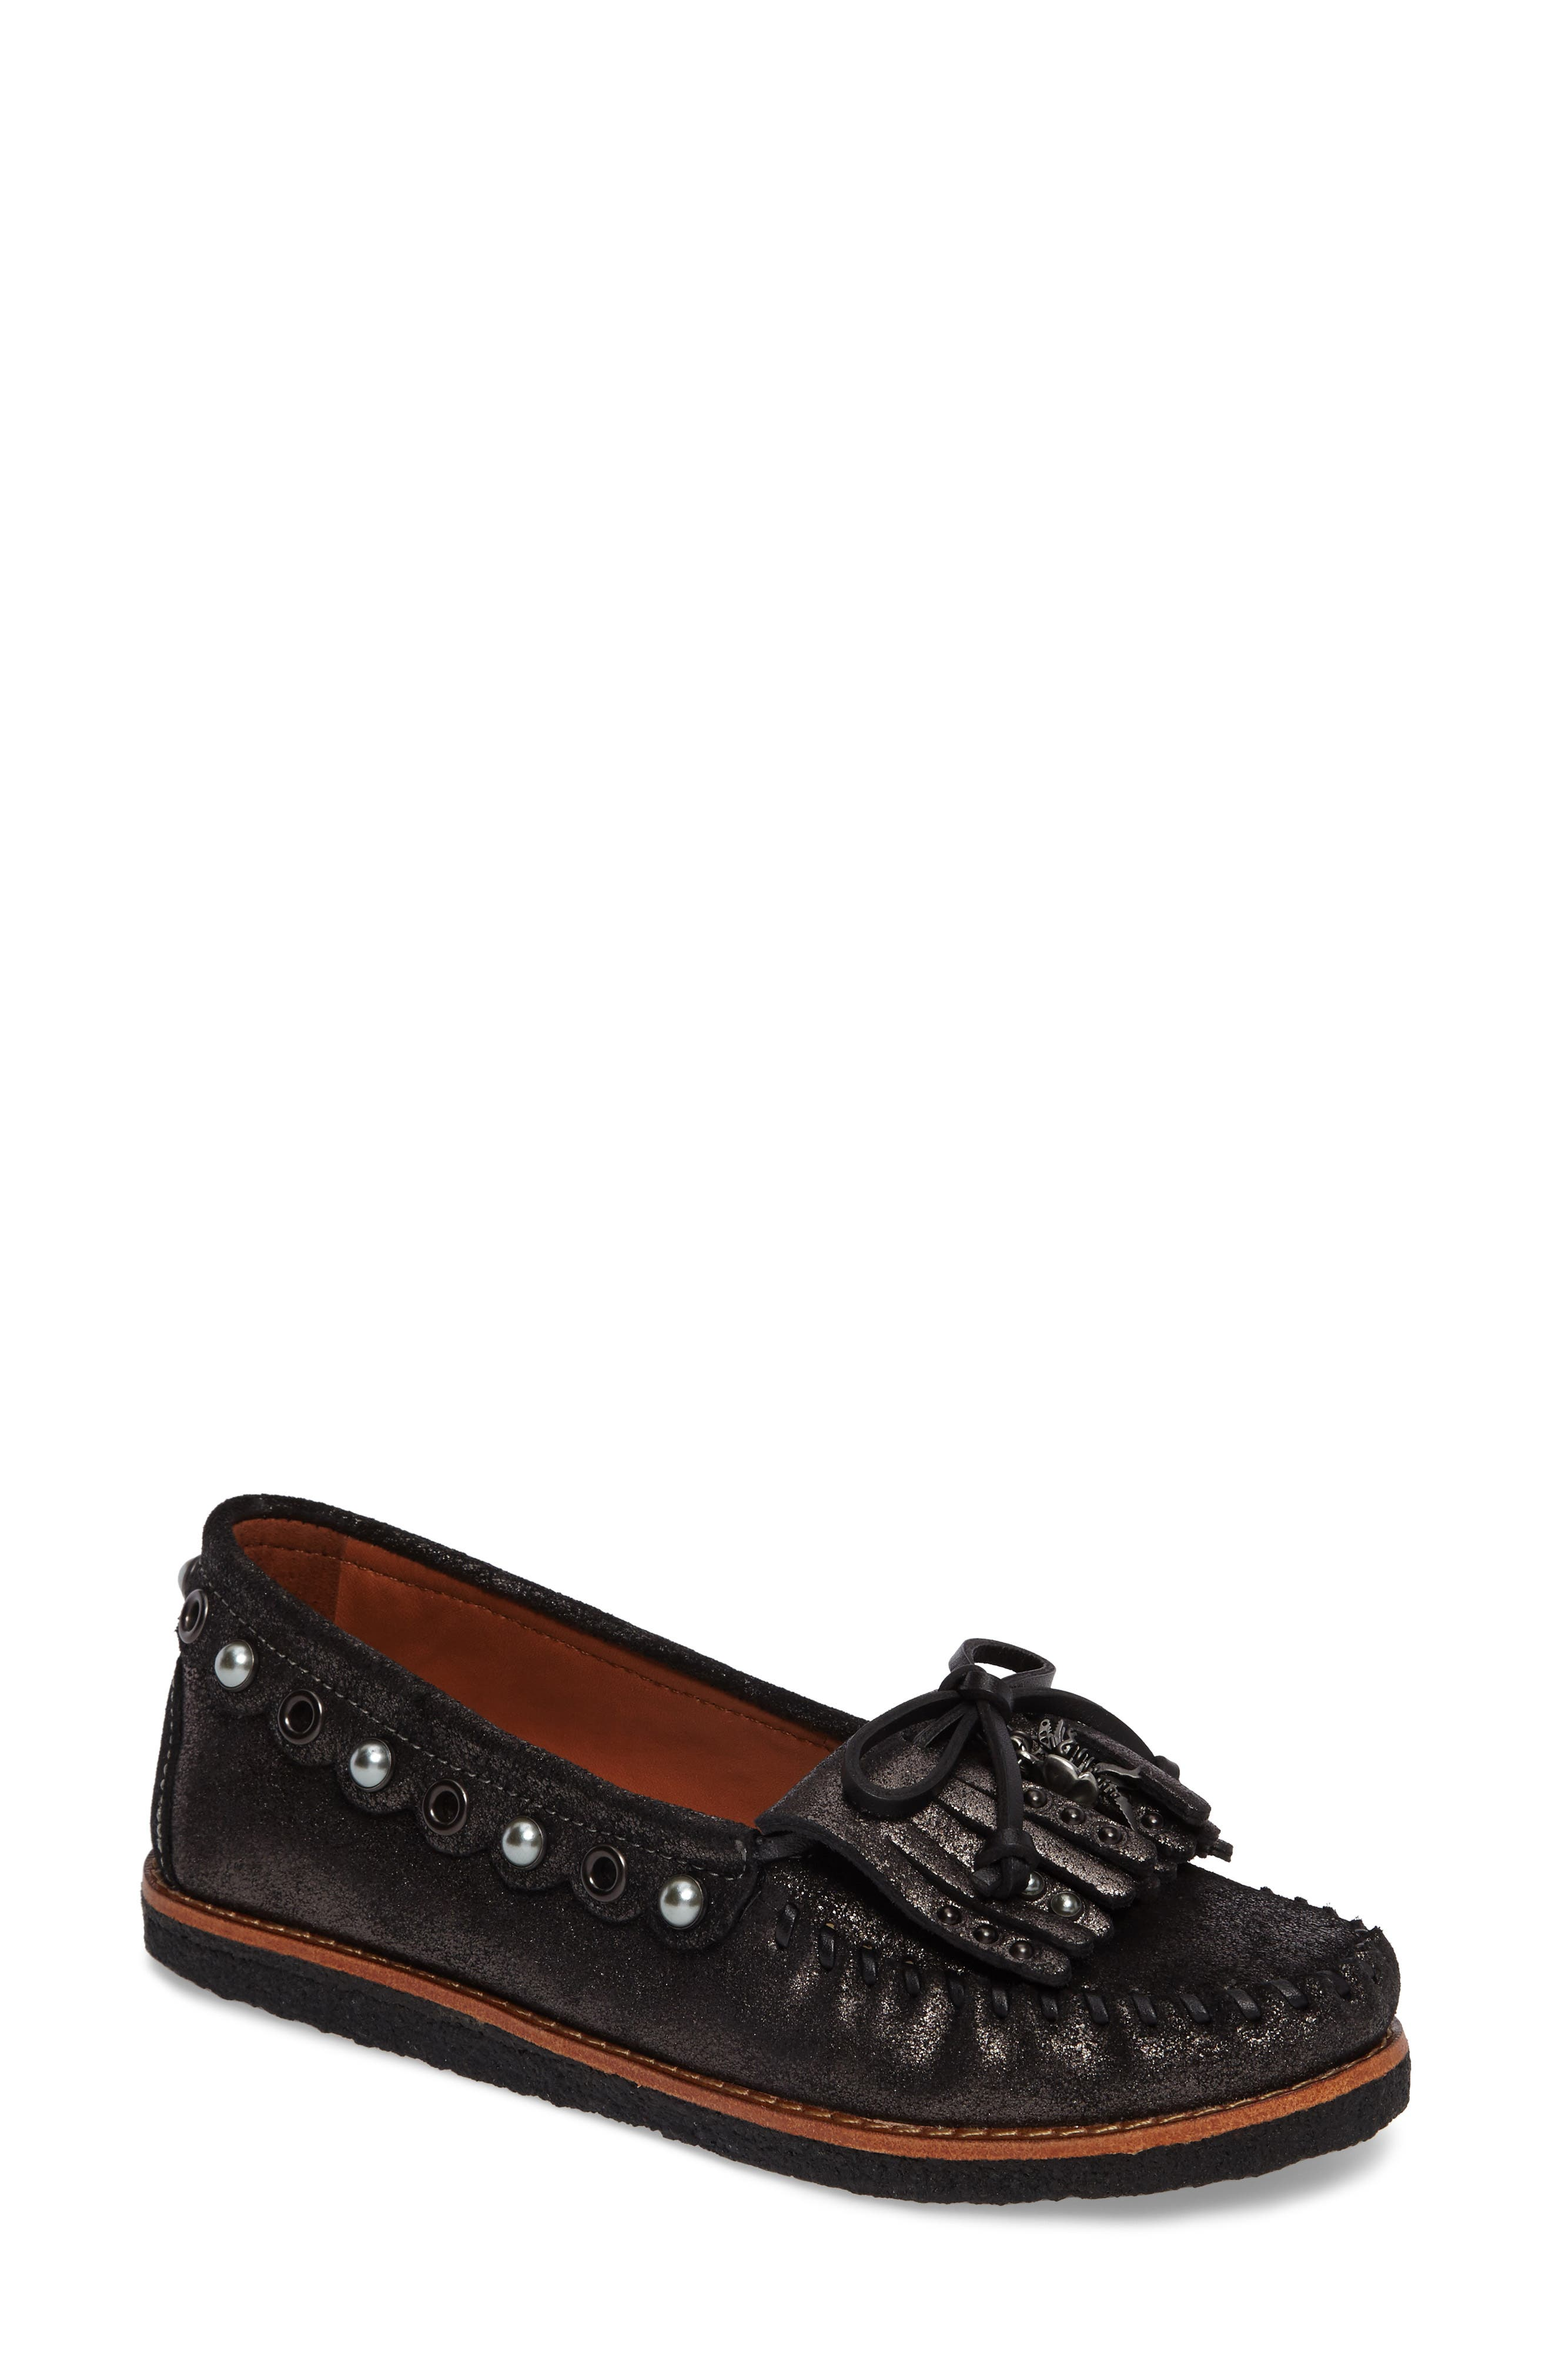 Roccasin Flat,                         Main,                         color, Anthracite Suede